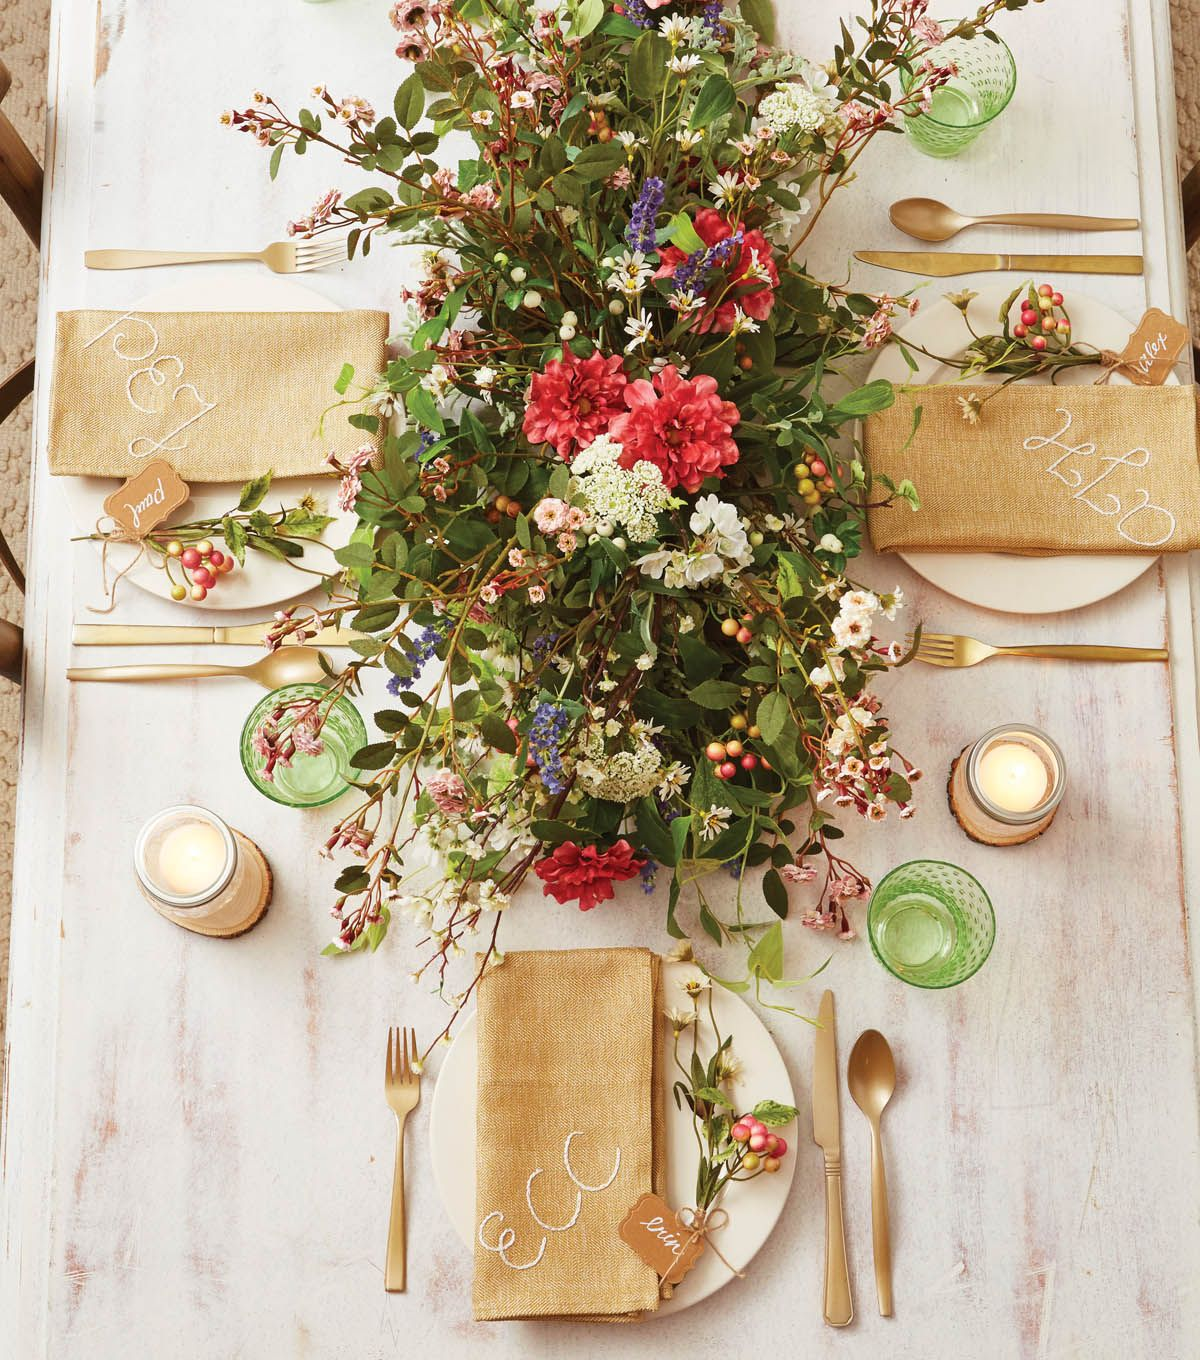 craft ideas homemade bridal shower decoration%0A Spring Floral Tablescape   Spring Inspiration with JoAnn   Pinterest    Floral and Spring